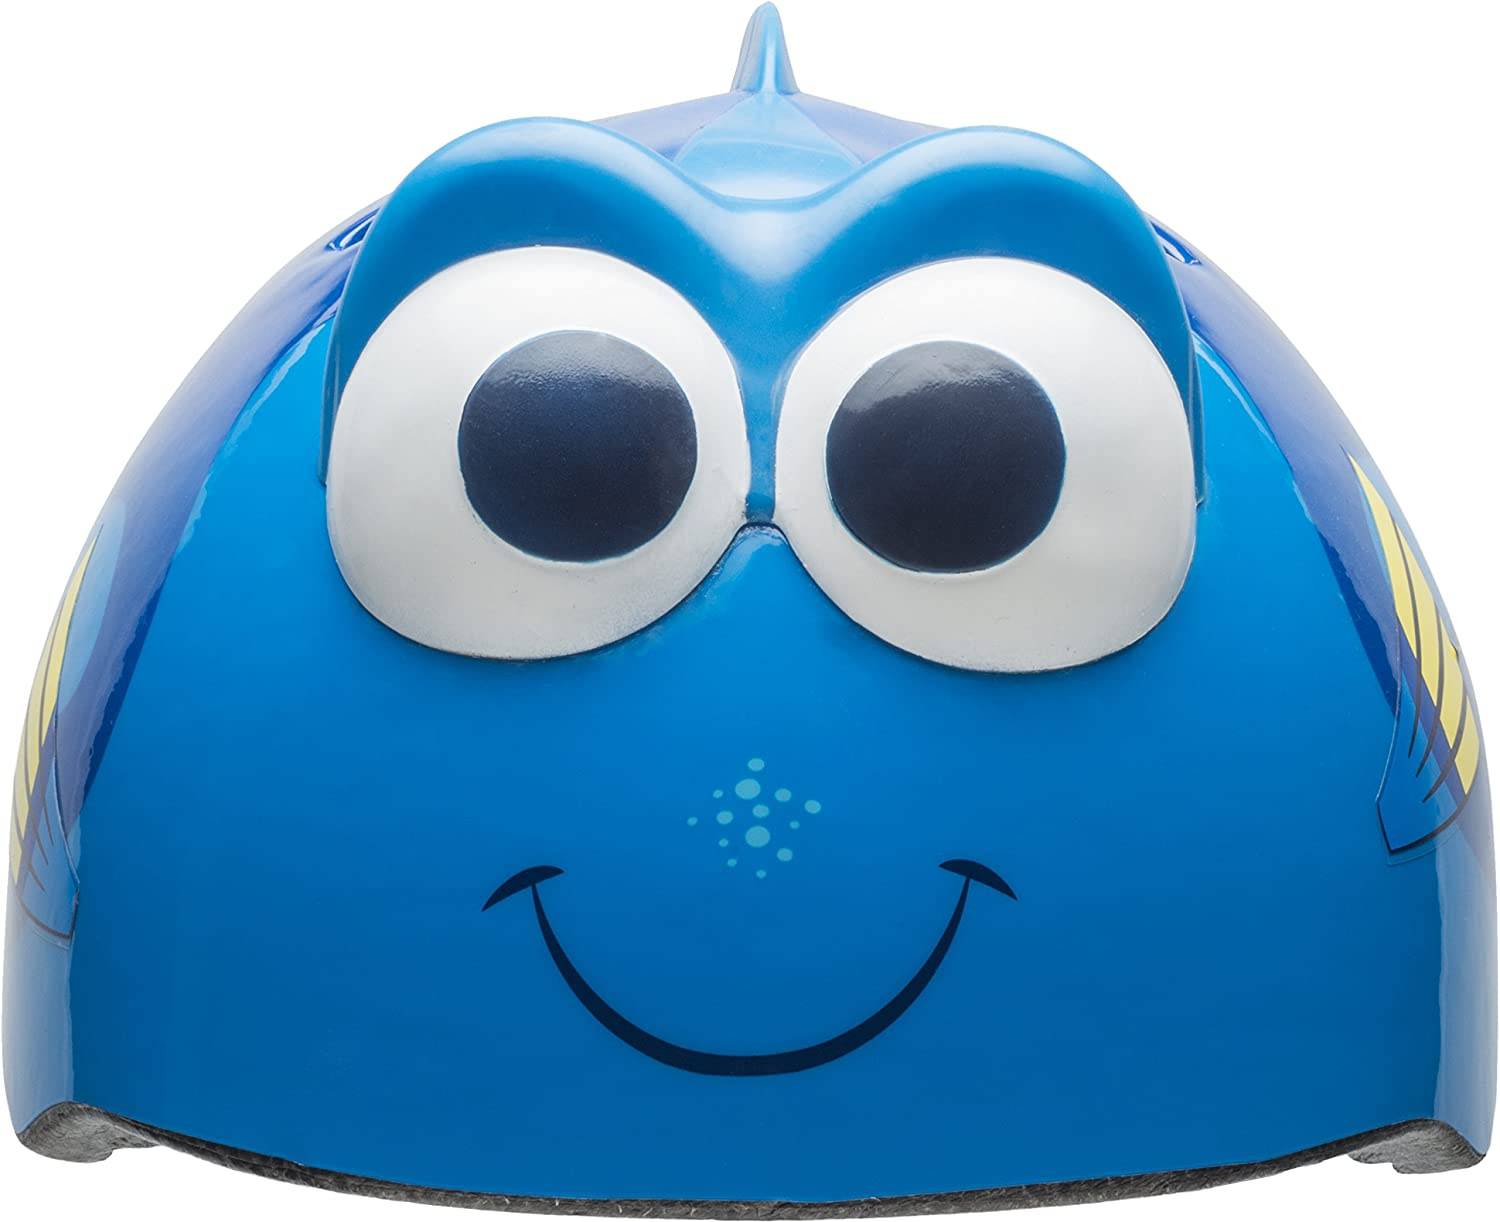 Bell Finding Dory 3D Toddler and Child Bike Helmets